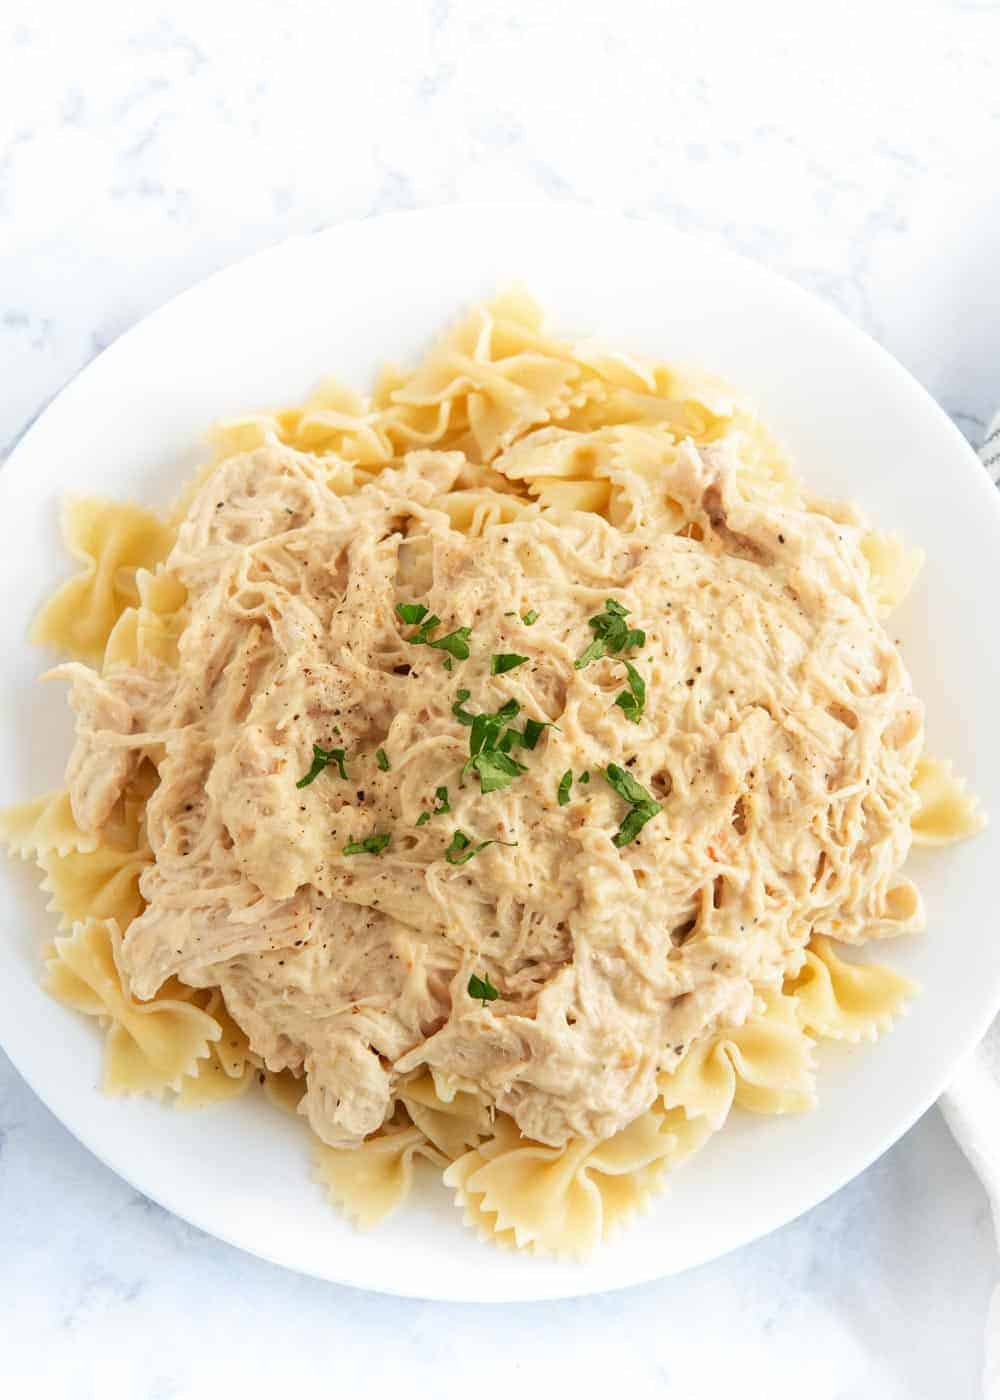 creamy Italian chicken served over noodles on a white plate